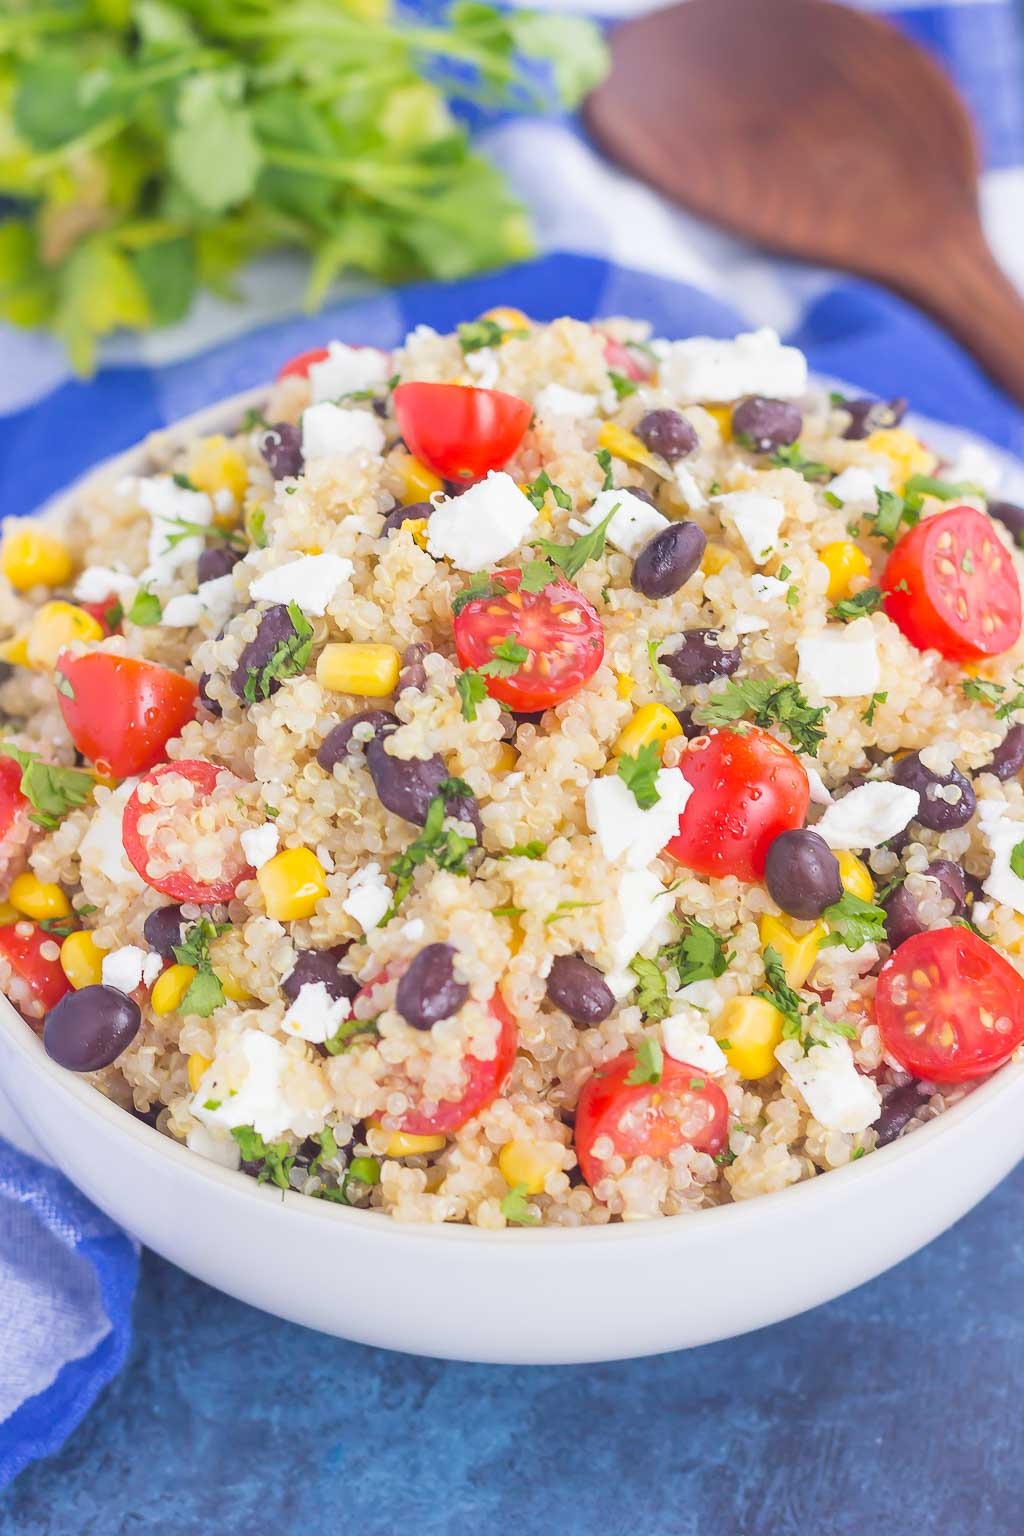 This Corn and Black Bean Quinoa Salad is hearty, on the healthier side, and perfect for a light meal. Loaded with flavor and ready in less than 30 minutes, this simple salad is perfect for lunch or dinner #quinoa #quinoasalad #quinoasaladrecipe #quinoabowl #cornsalad #blackbeansalad #healthysalad #salad #healthylunch